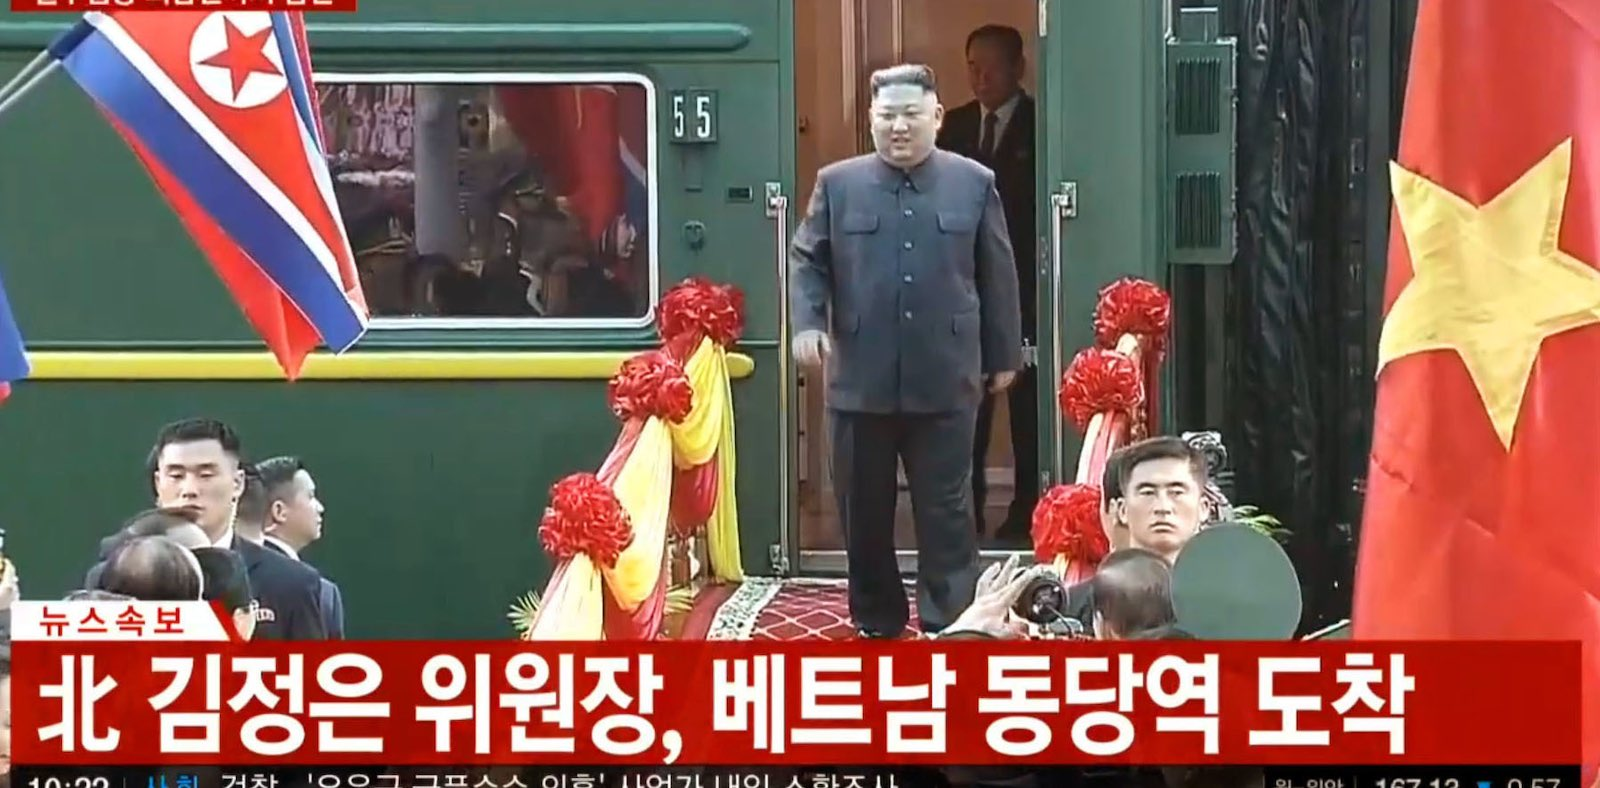 Television footage shows North Korean leader Kim Jong-un arriving at Vietnam's Dong Dang railway station on 26 February (Photo: Kyodo News via Getty)